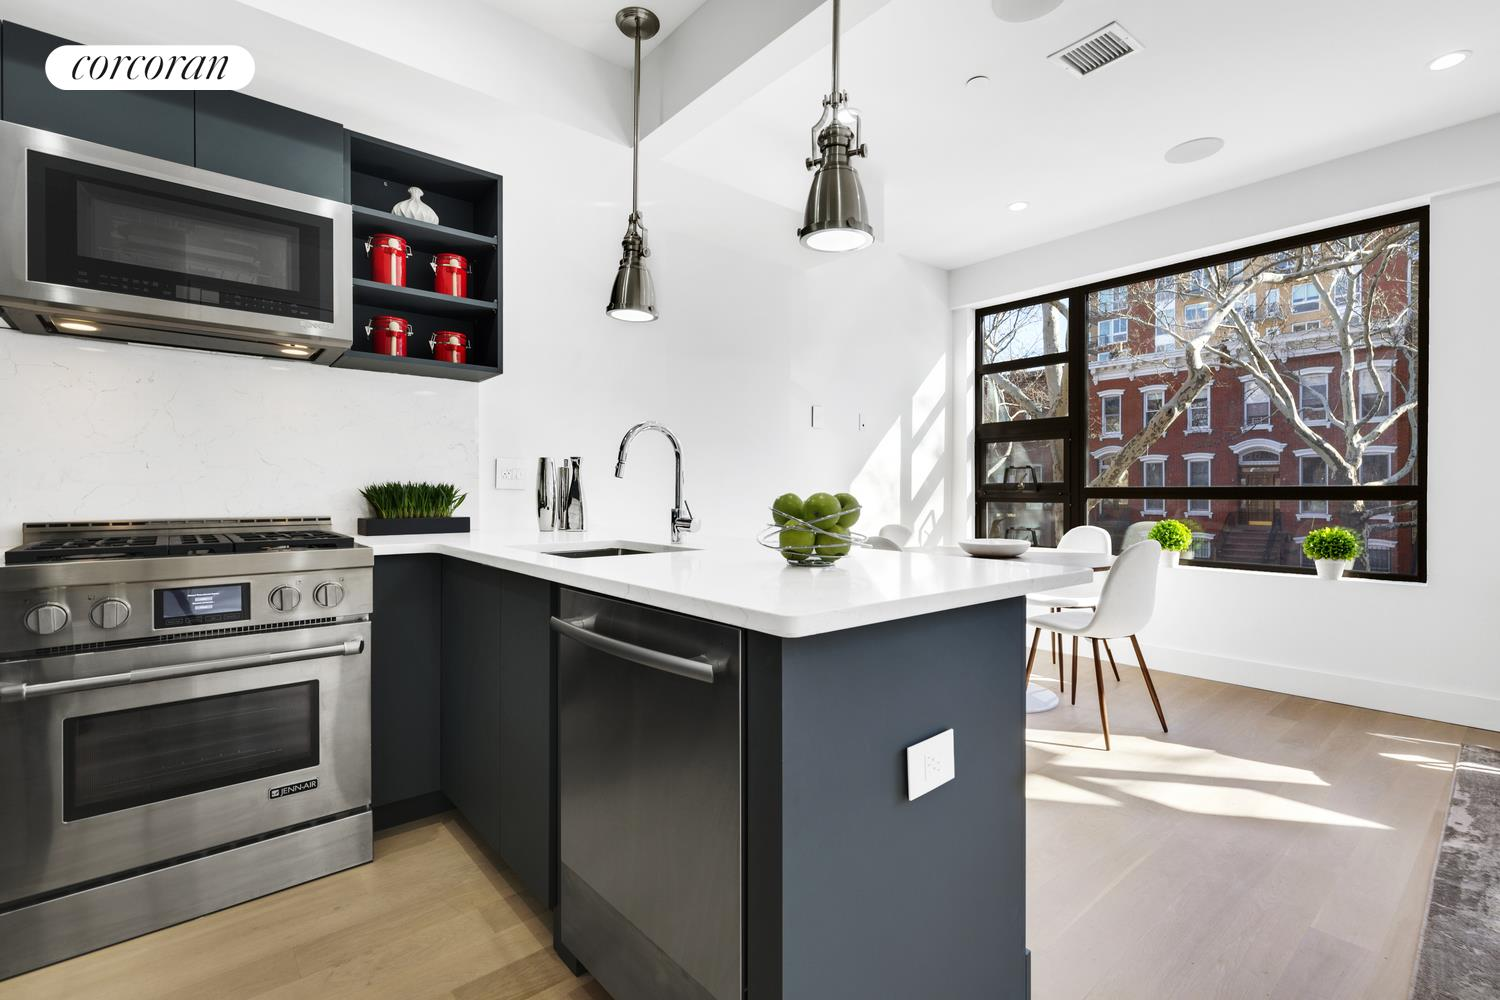 Corcoran, 149 Clifton Place, Apt. 2, Clinton Hill Real Estate ...